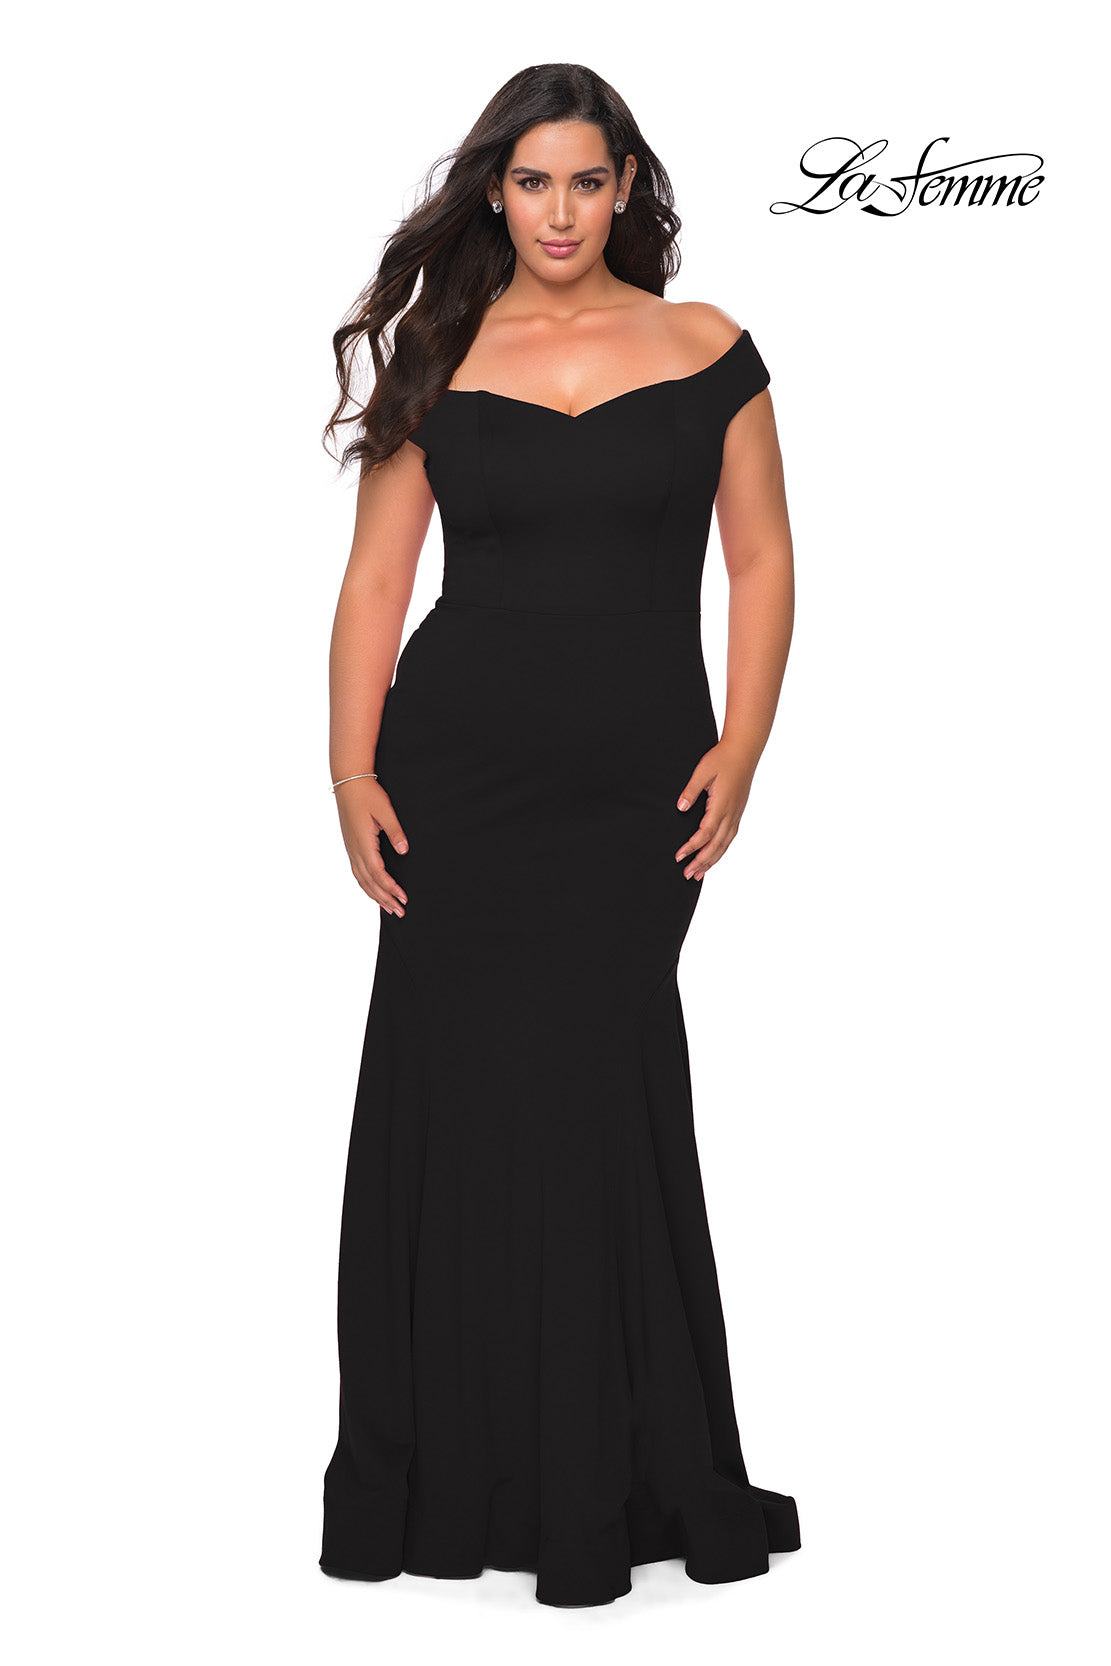 La Femme 28963 Off The Shoulder Jersey Fit & Flare Gown | Black, Red